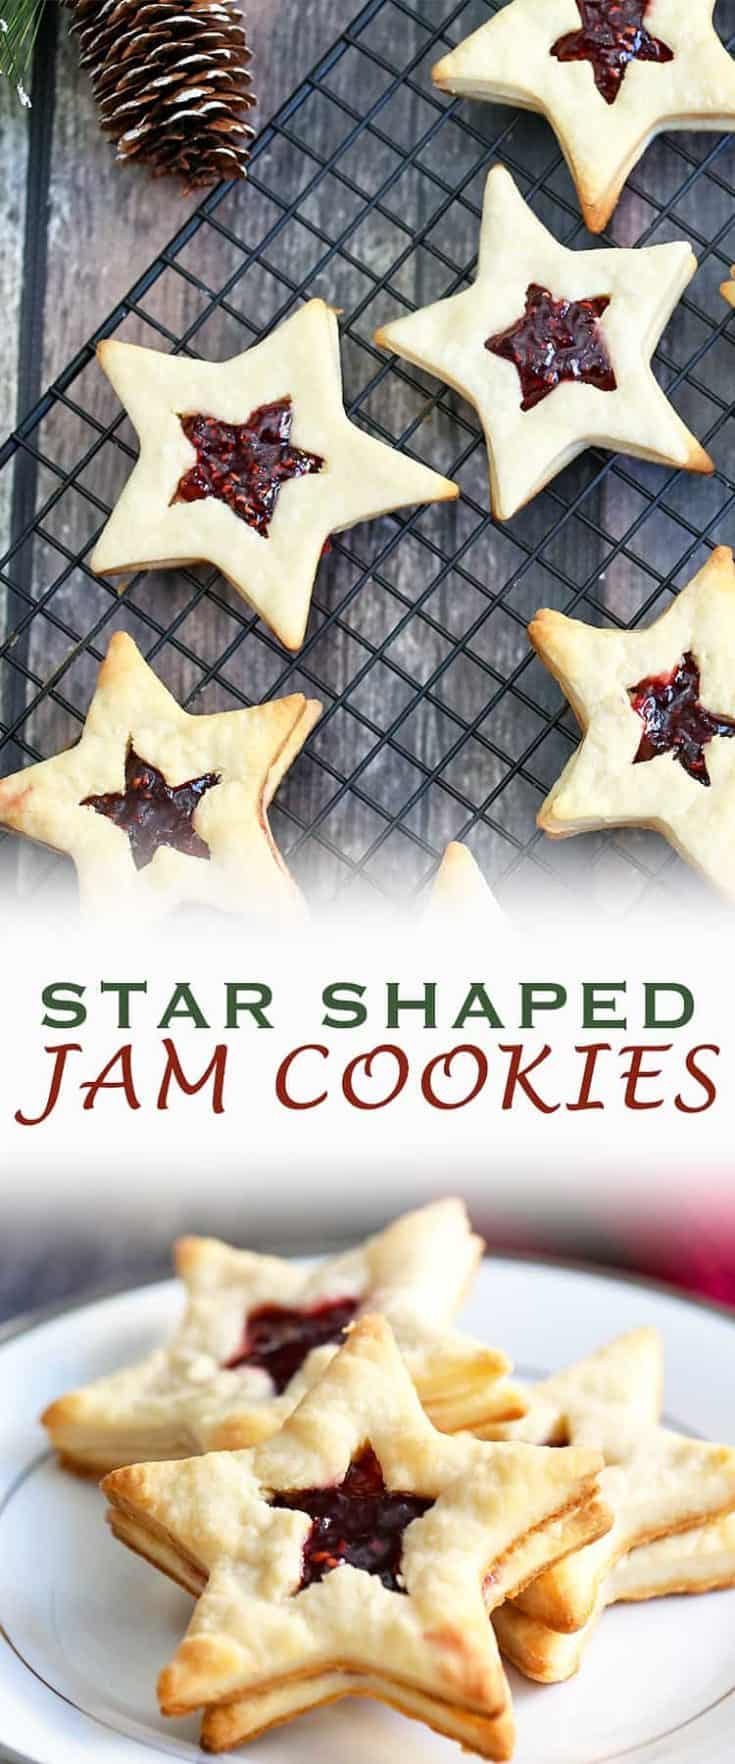 You can be theSTAR of the holiday party or baking exchange with these Star-Shaped Jam Cookies. They are a festive, fun and elegant holiday treat. #christmascookie #holidaybaking #cookieexchange